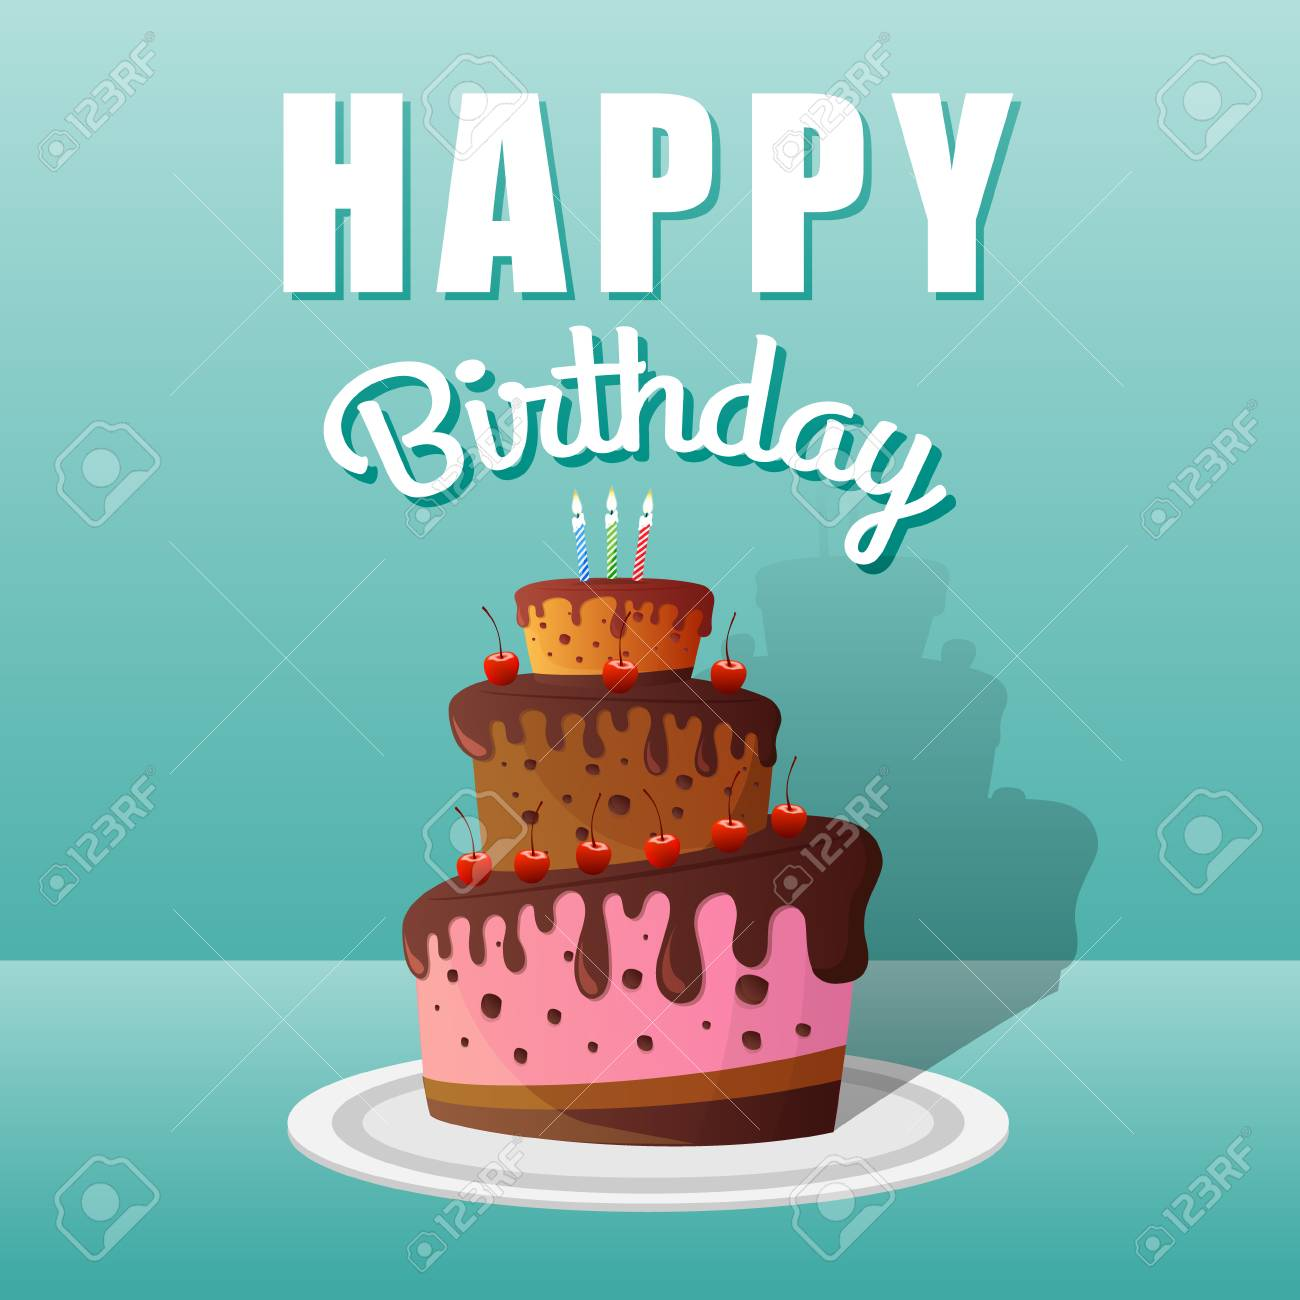 Happy Birthday Greeting Cards Design With Chocolate Cakes And Candles Vector Illustration Stock